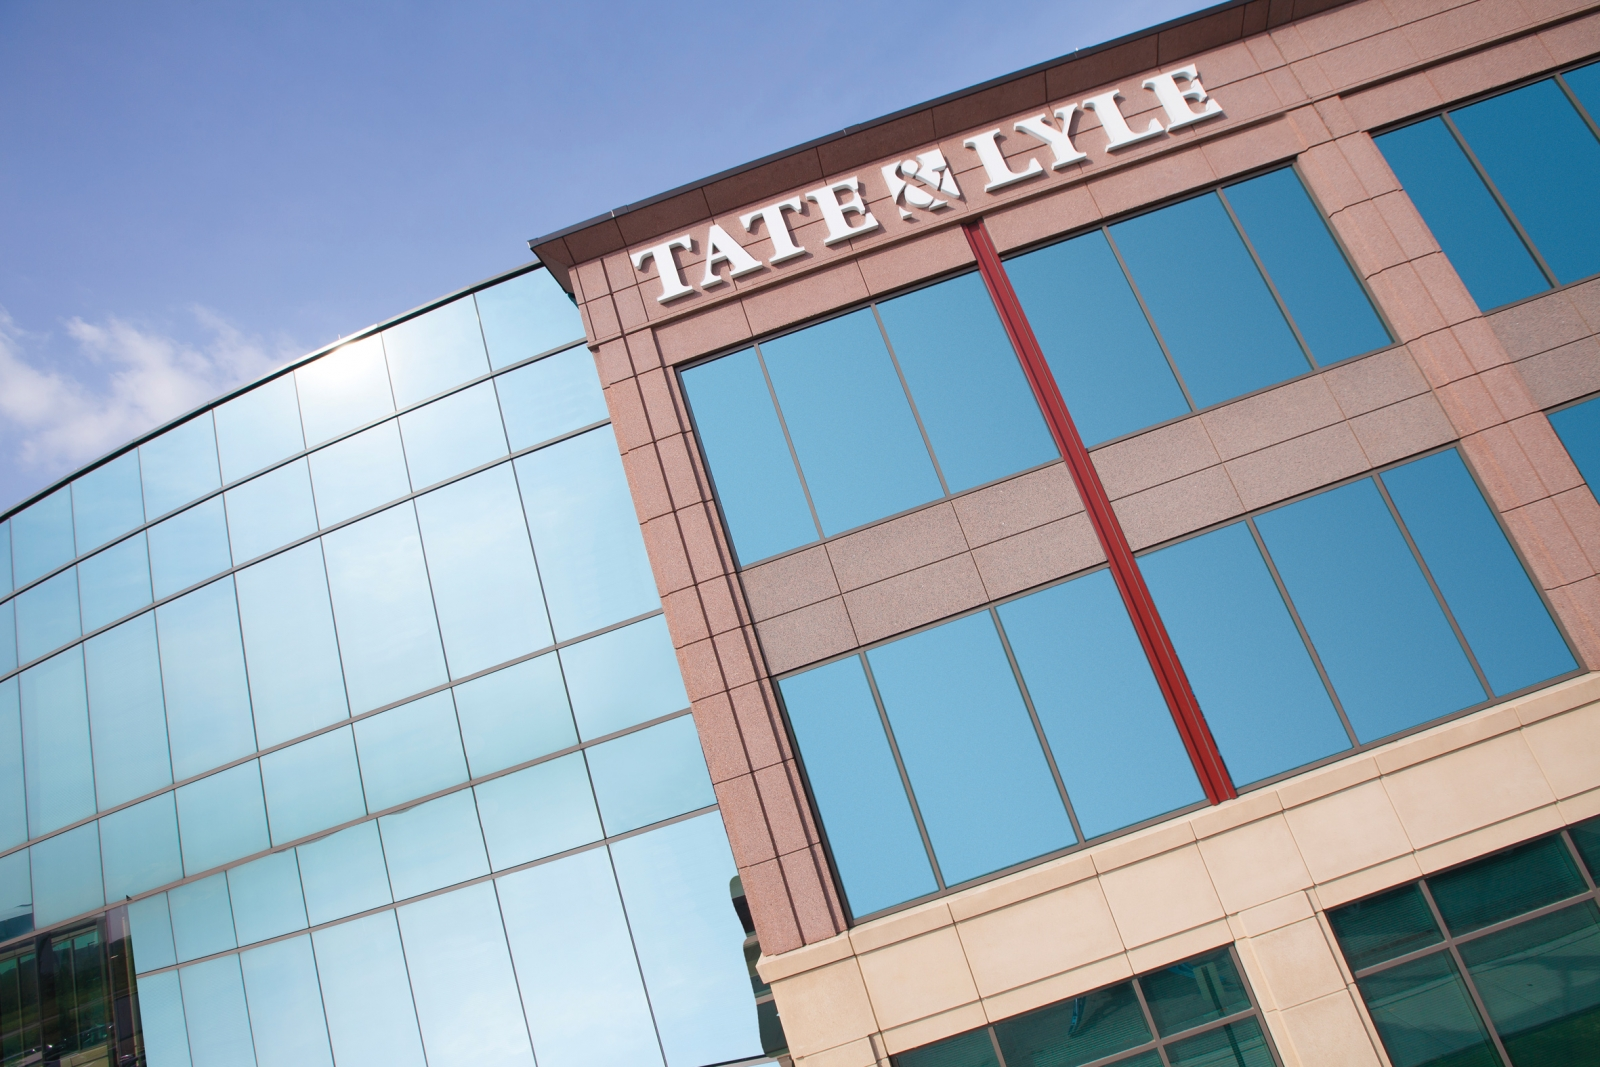 Tate & Lyle Building